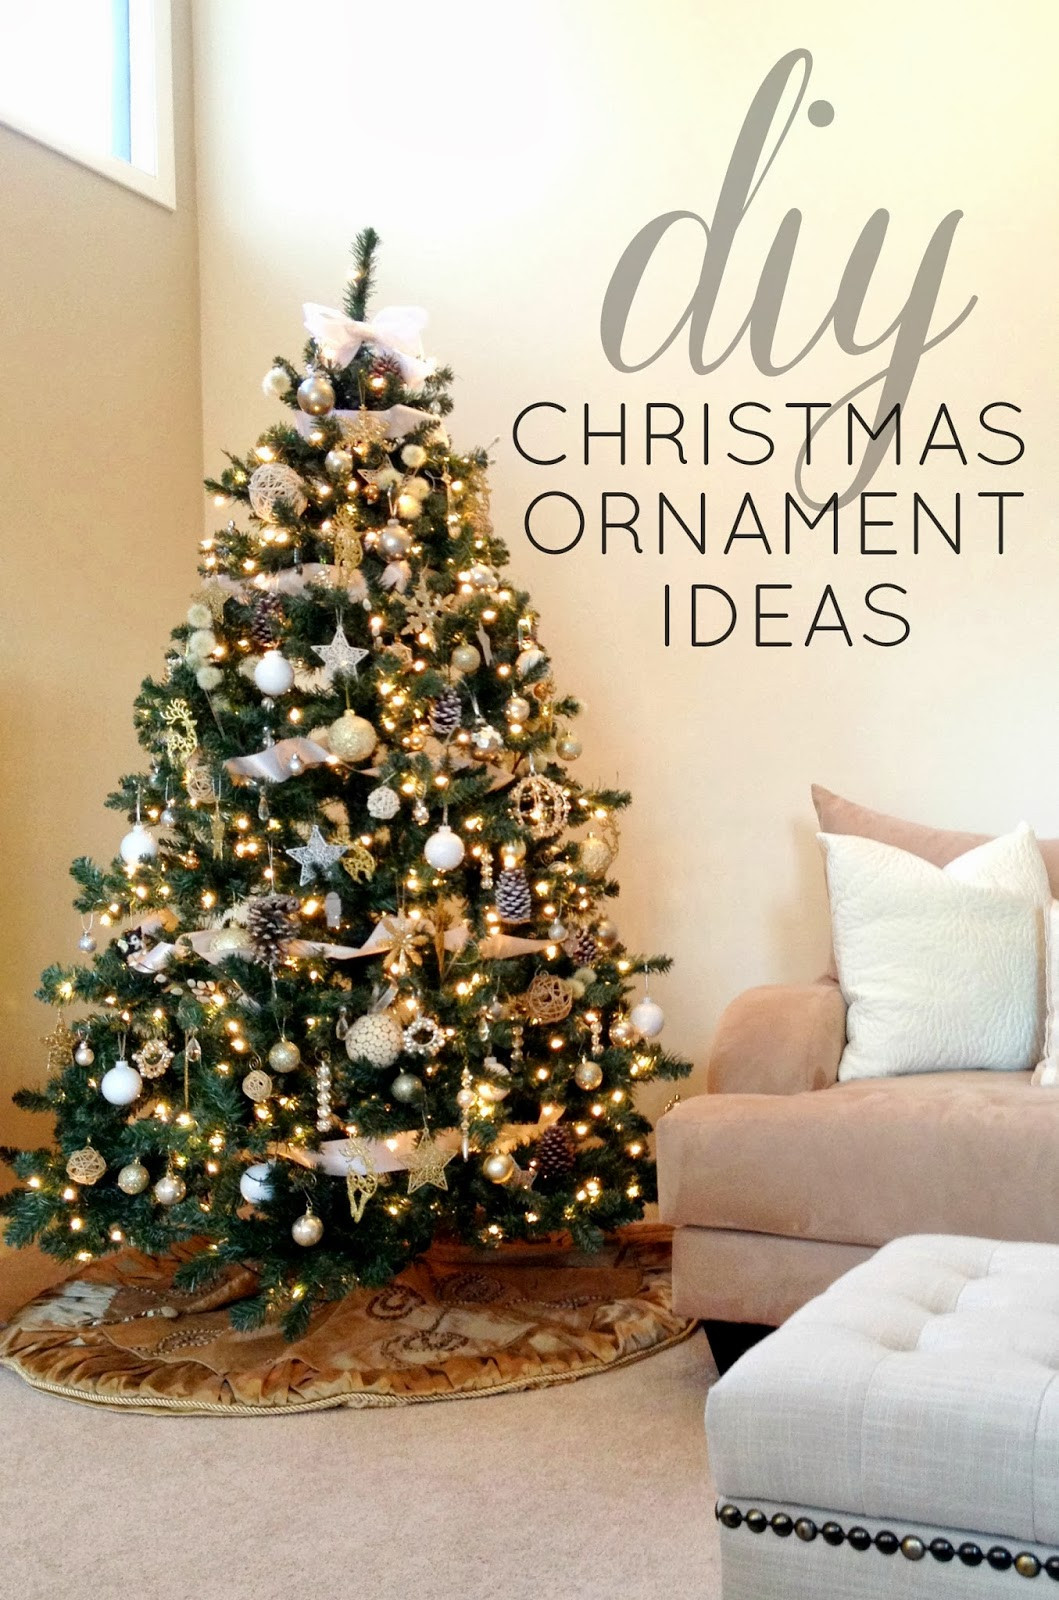 Elegant Christmas Tree Decorations Ideas and Tips to Decorate It Christmas Tree and Decorations Of Delightful 50 Pictures Christmas Tree and Decorations